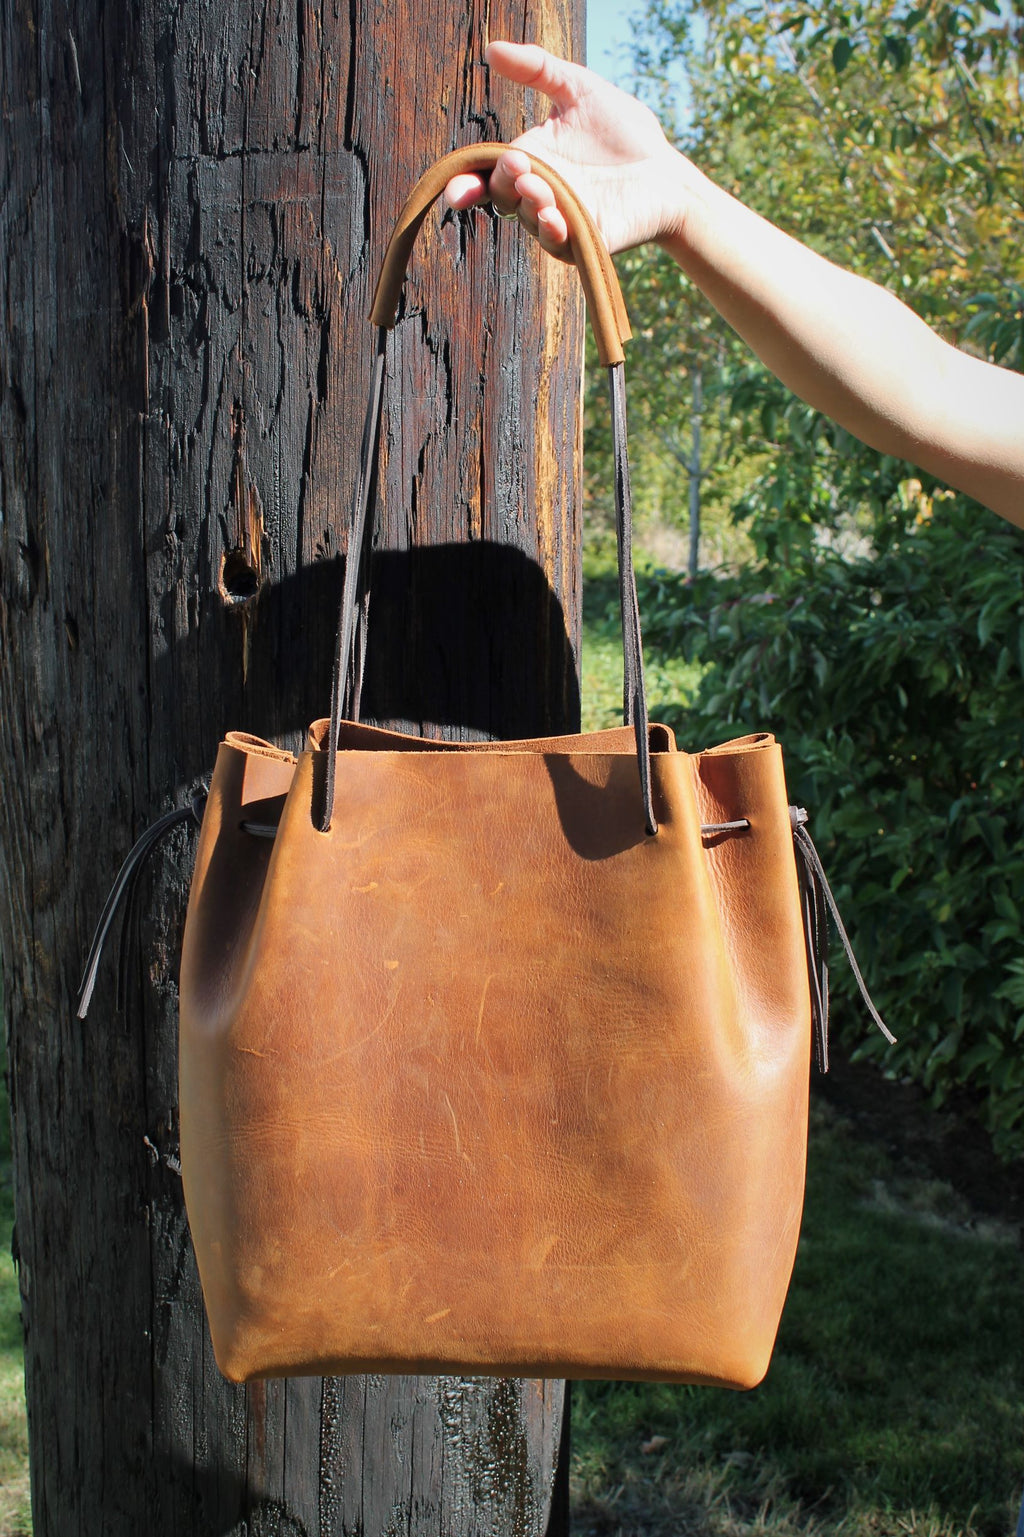 Saddle Brown Leather Tote Bag - available in Sable, Saddle Brown, Distressed Brown, Chocolate Brown or Burgundy